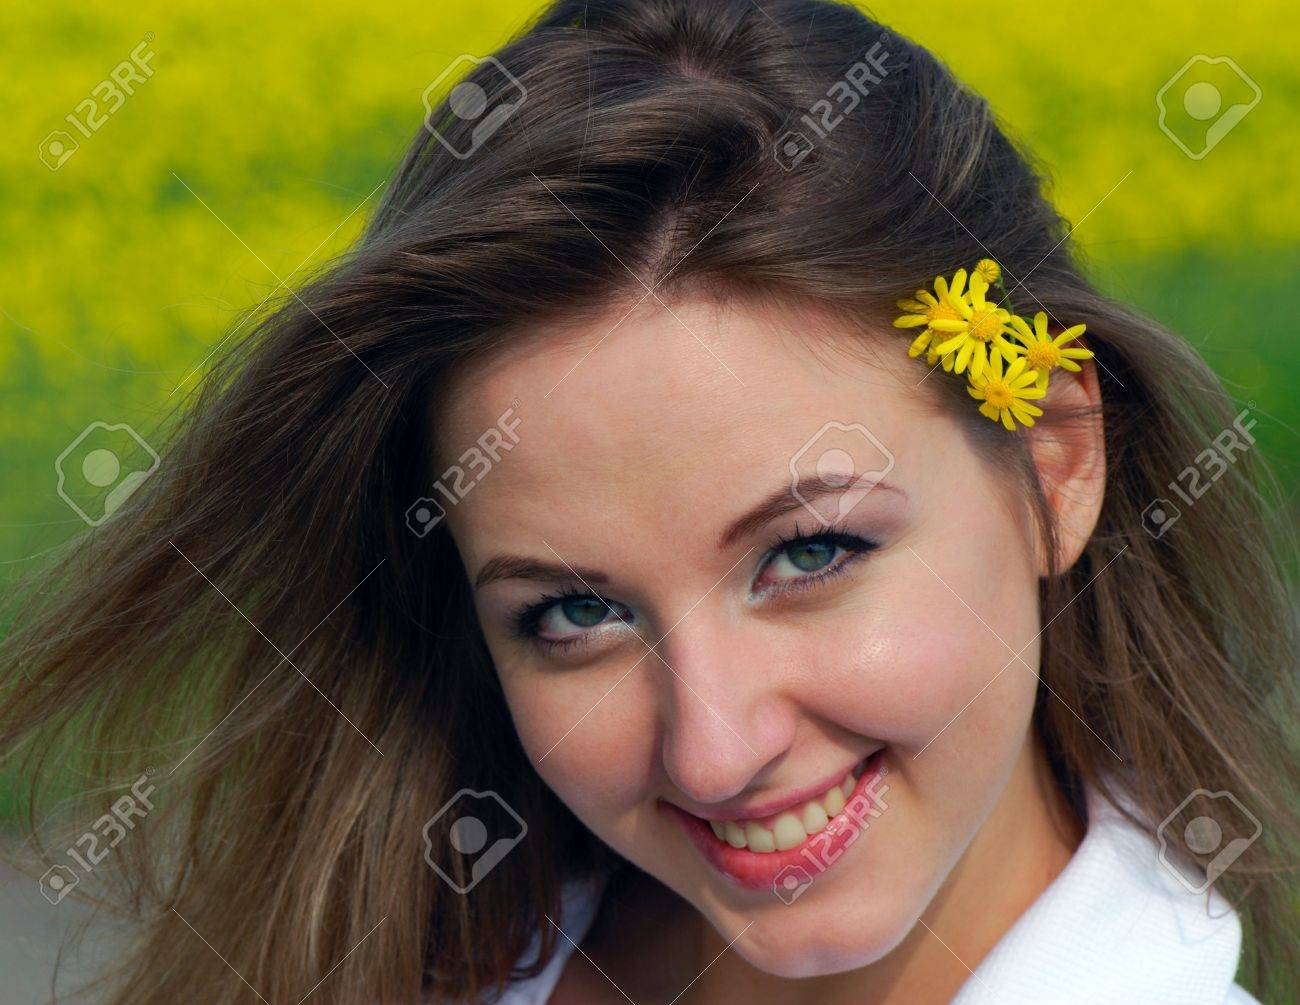 Portrait  cheerful young nice smiling girl  closeup Stock Photo - 5028876